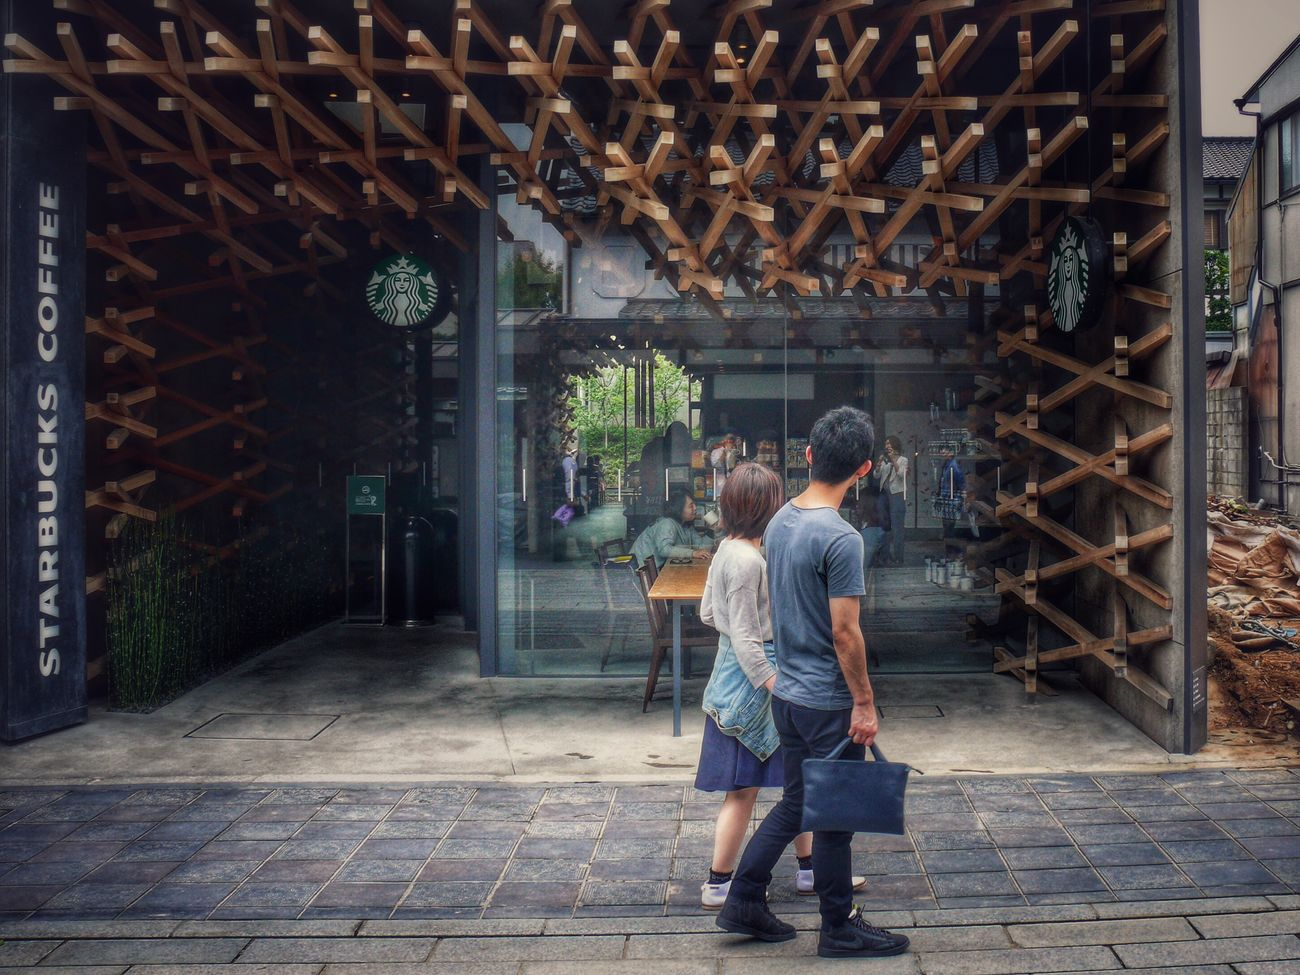 Starbucks Dazaifu Fukuoka,Japan Streetphotography Streetphoto_color Couple Shopfront Architecture / V-LUX1 50mm Snapseed_HDR De Good evening. EyeEm No.1111 Snapshots Of Life